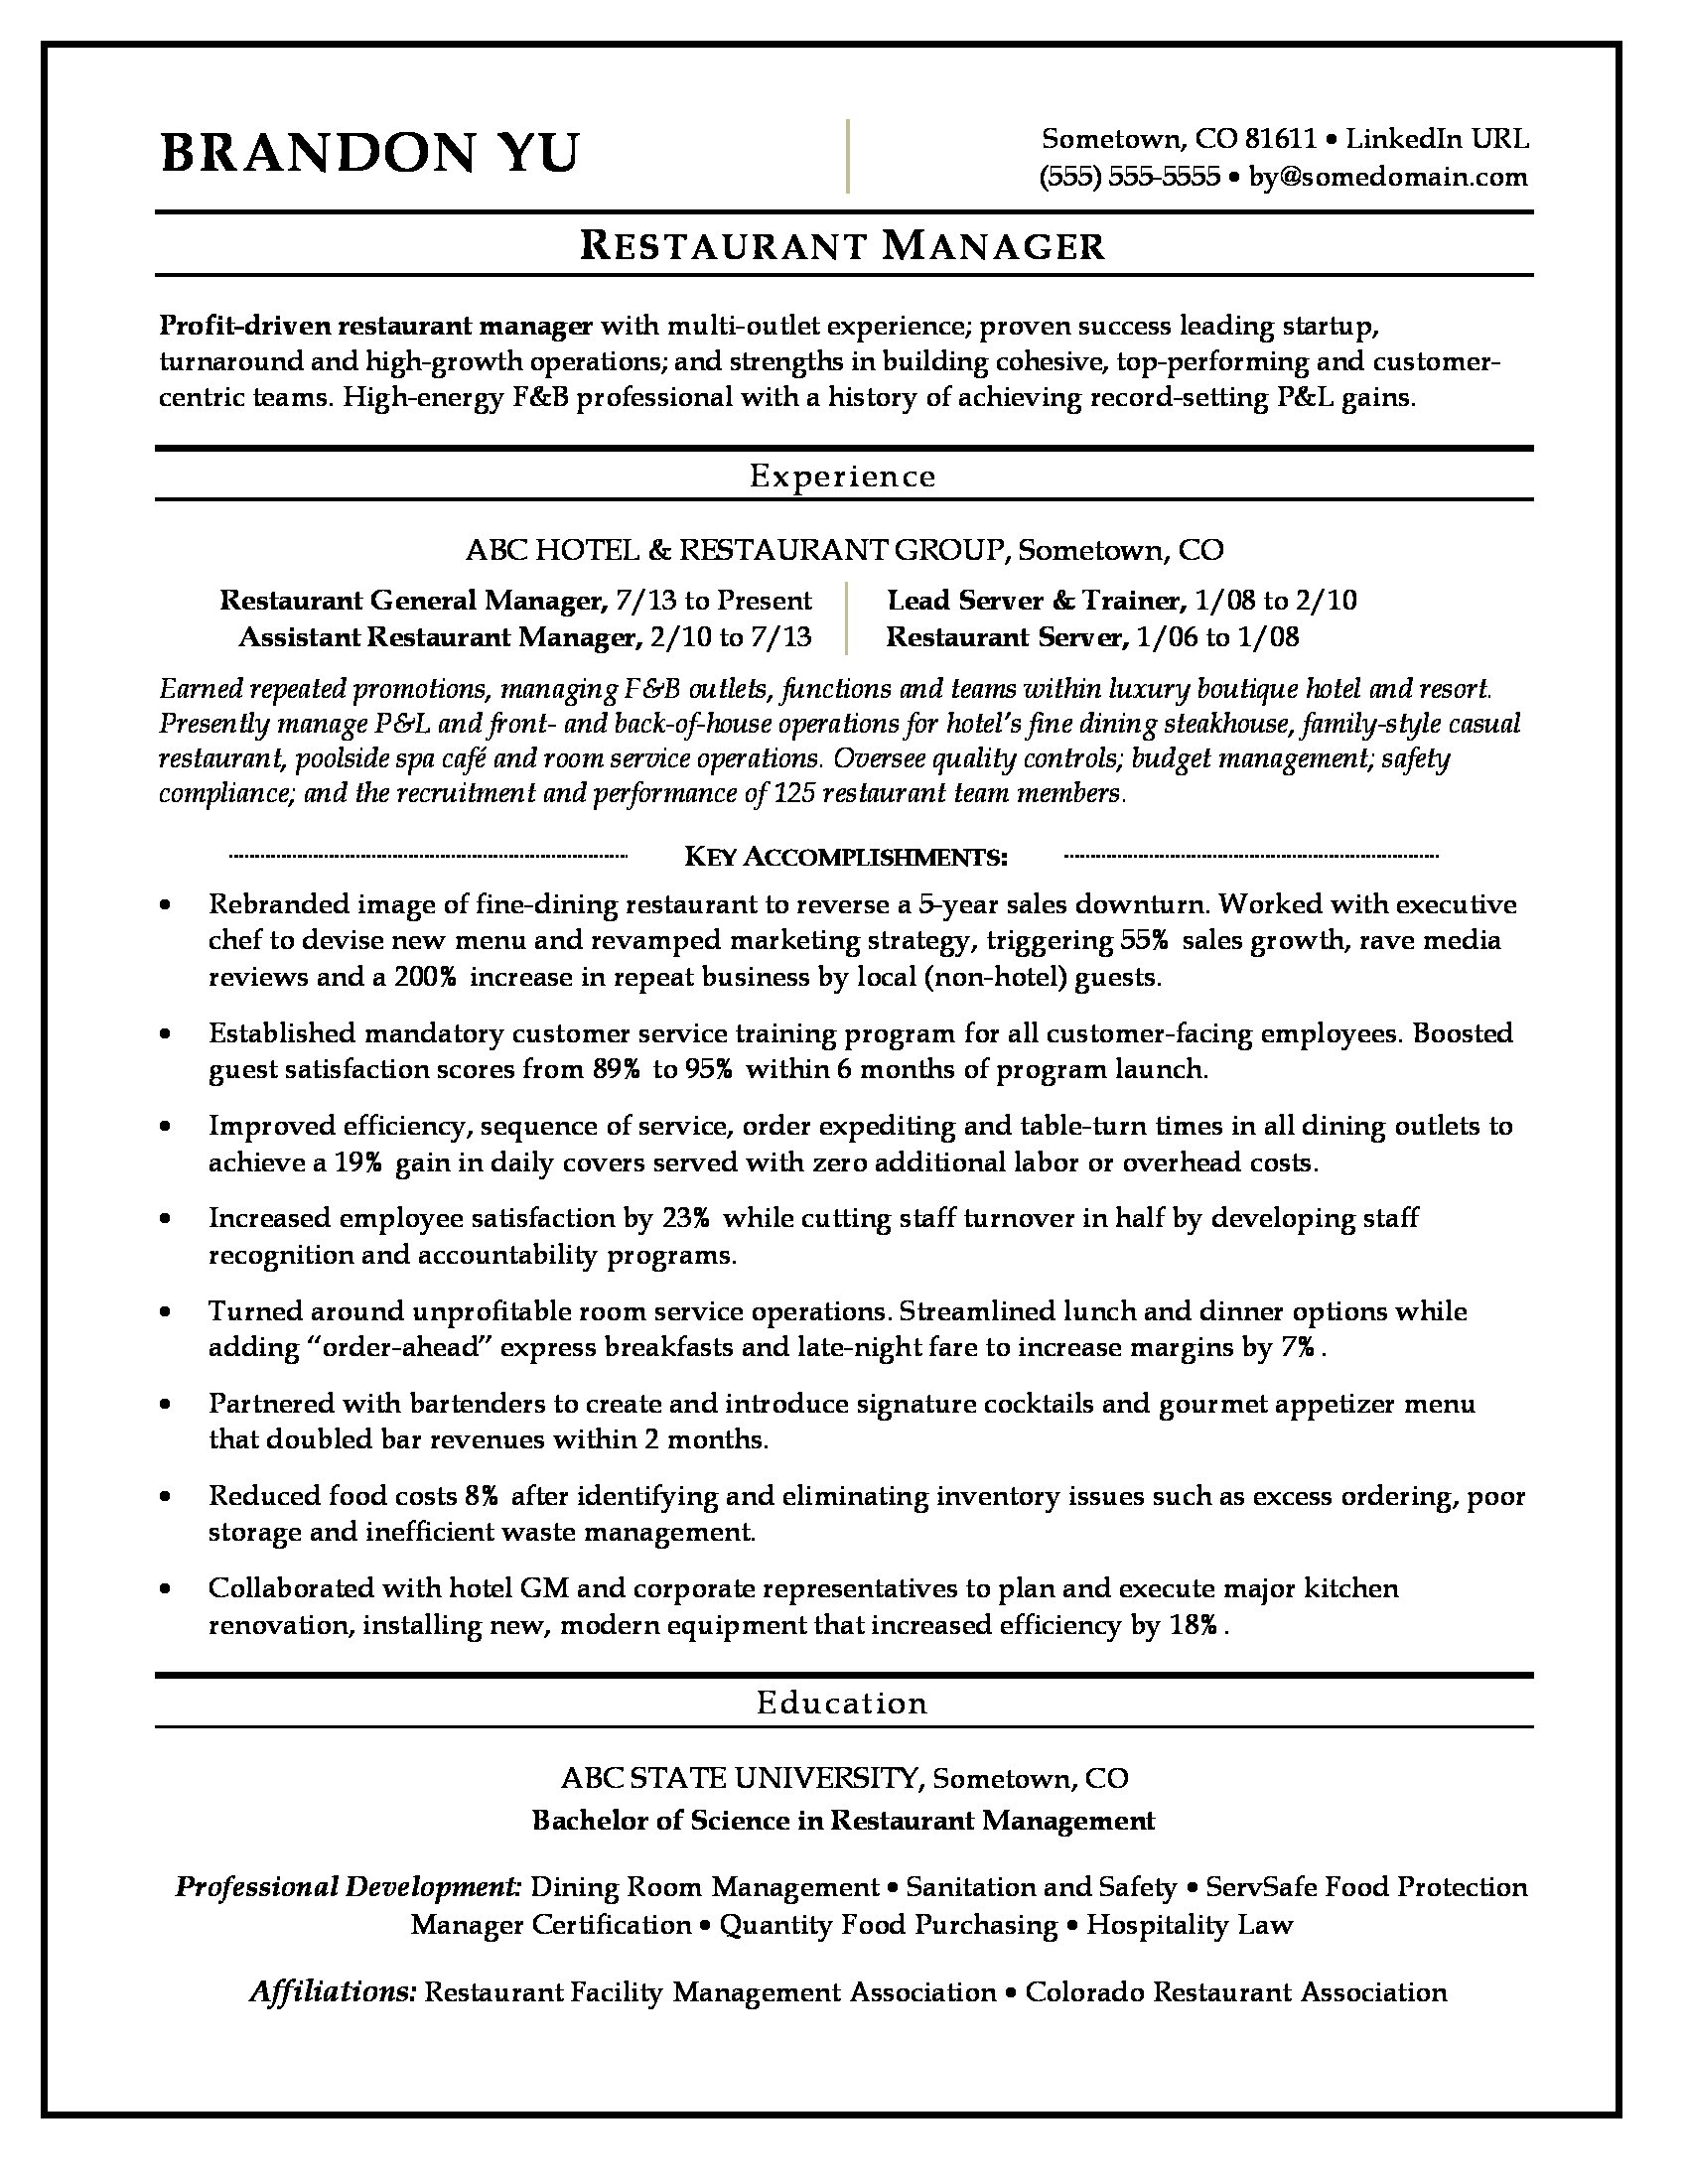 sample resume for a restaurant manager - Sample Resume Operations Manager